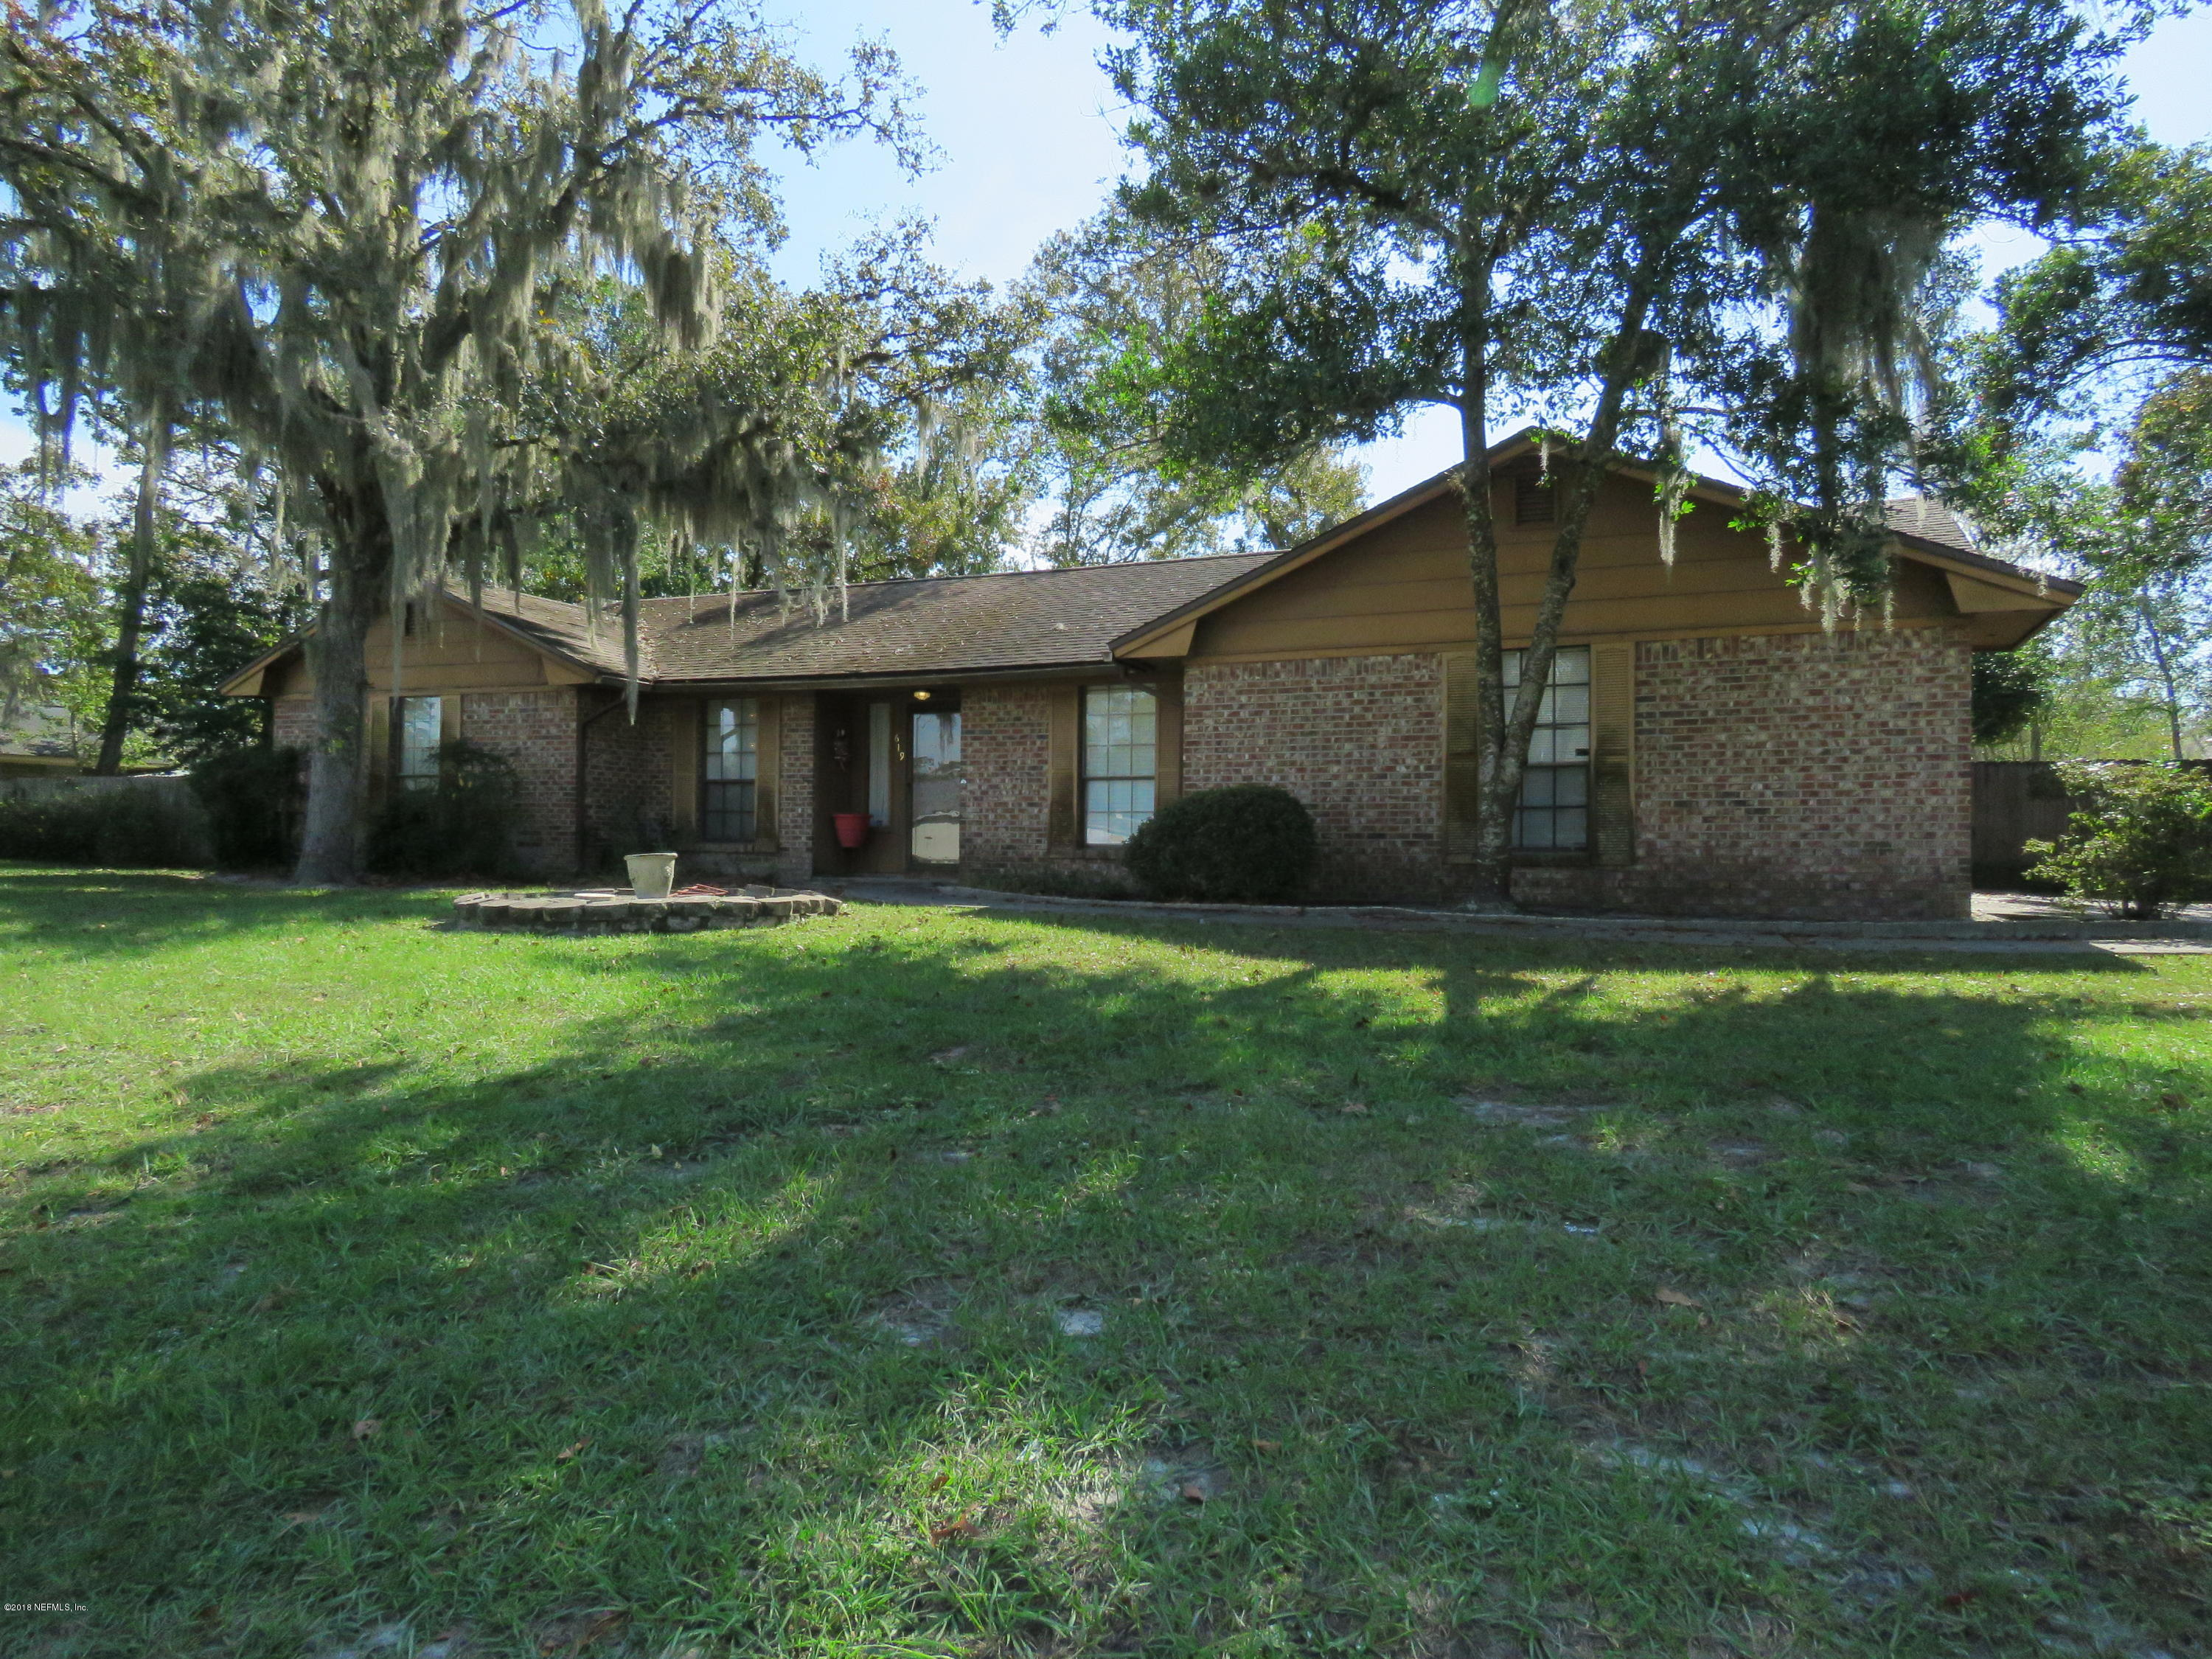 619 HARRISON, ORANGE PARK, FLORIDA 32065, 3 Bedrooms Bedrooms, ,2 BathroomsBathrooms,Residential - single family,For sale,HARRISON,966806